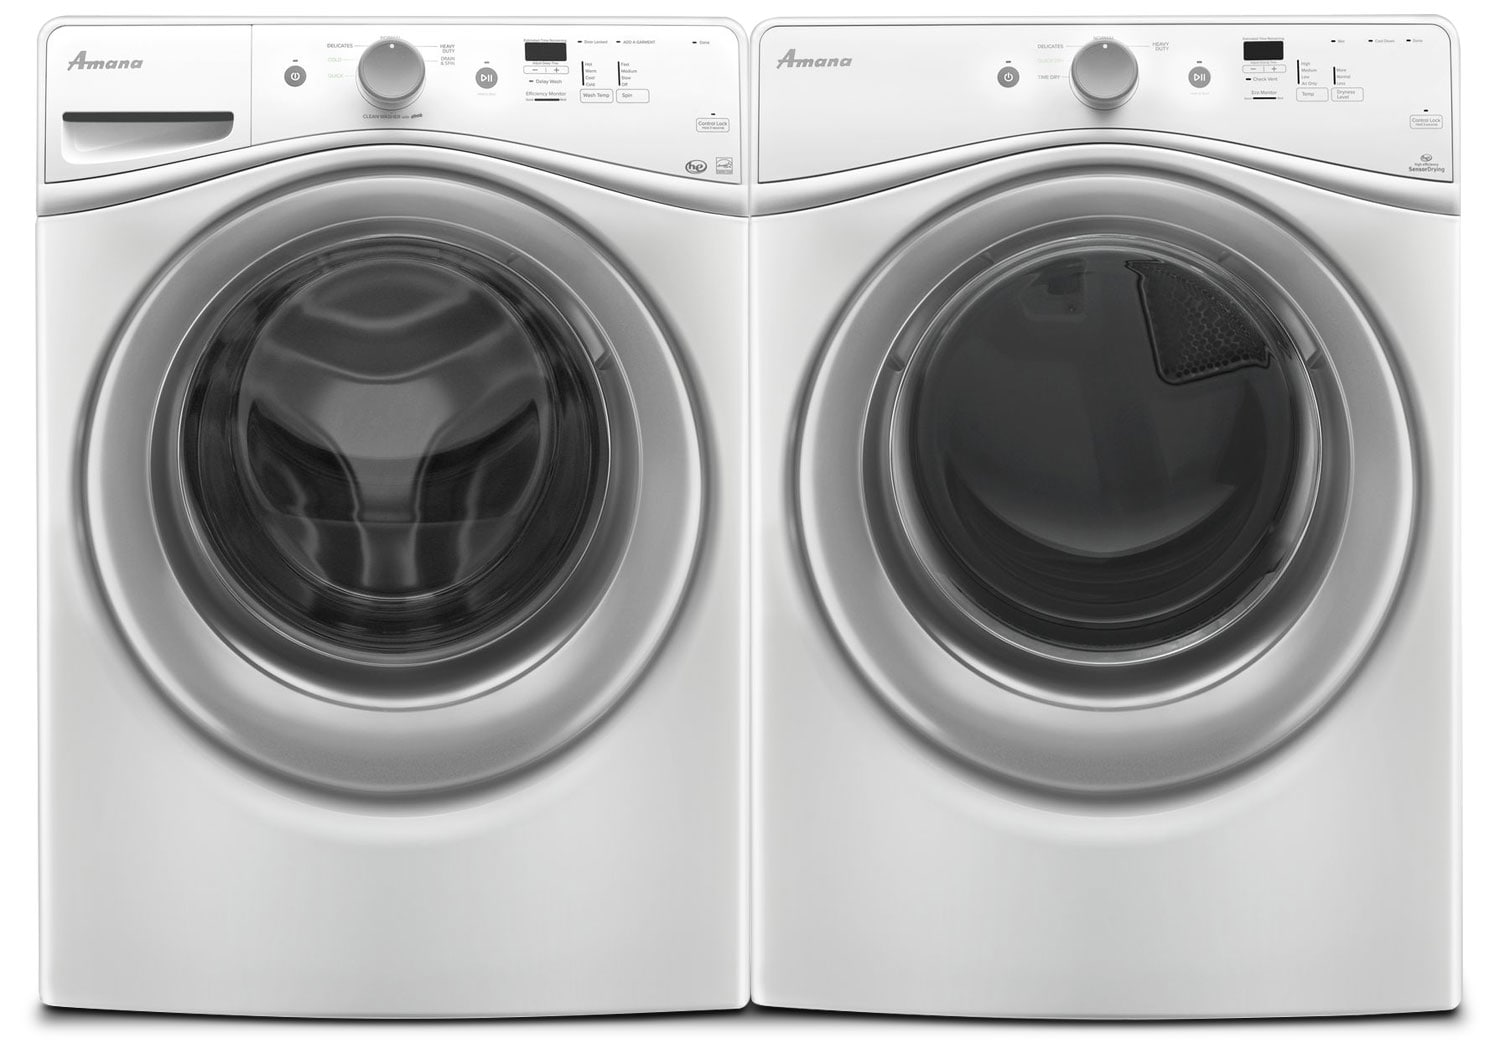 Amana 4.8 Cu. Ft. Front Load Washer and 7.4 Cu. Ft. Gas Dryer - White